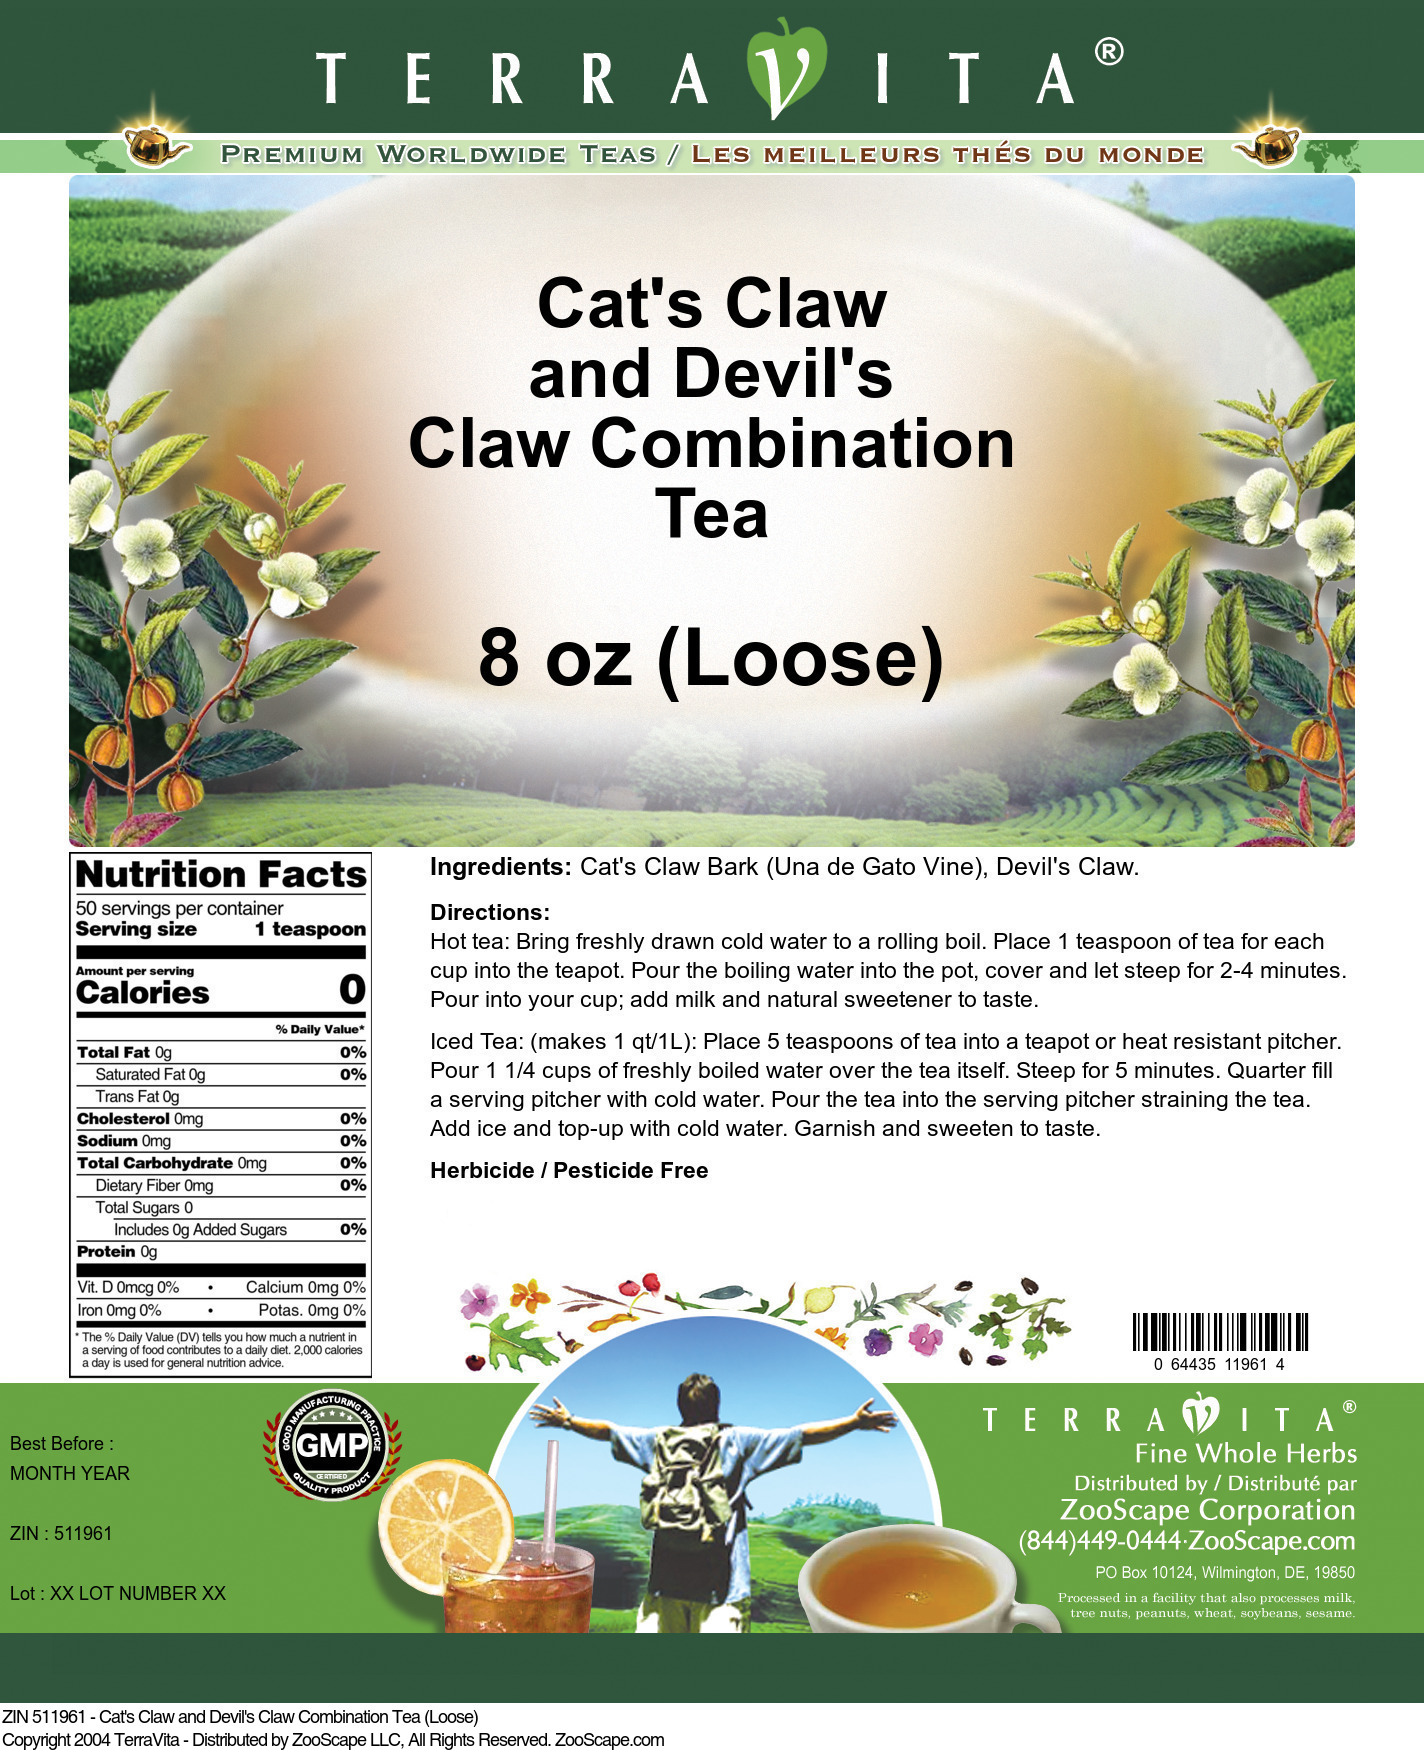 Cat's Claw and Devil's Claw Combination Tea (Loose)